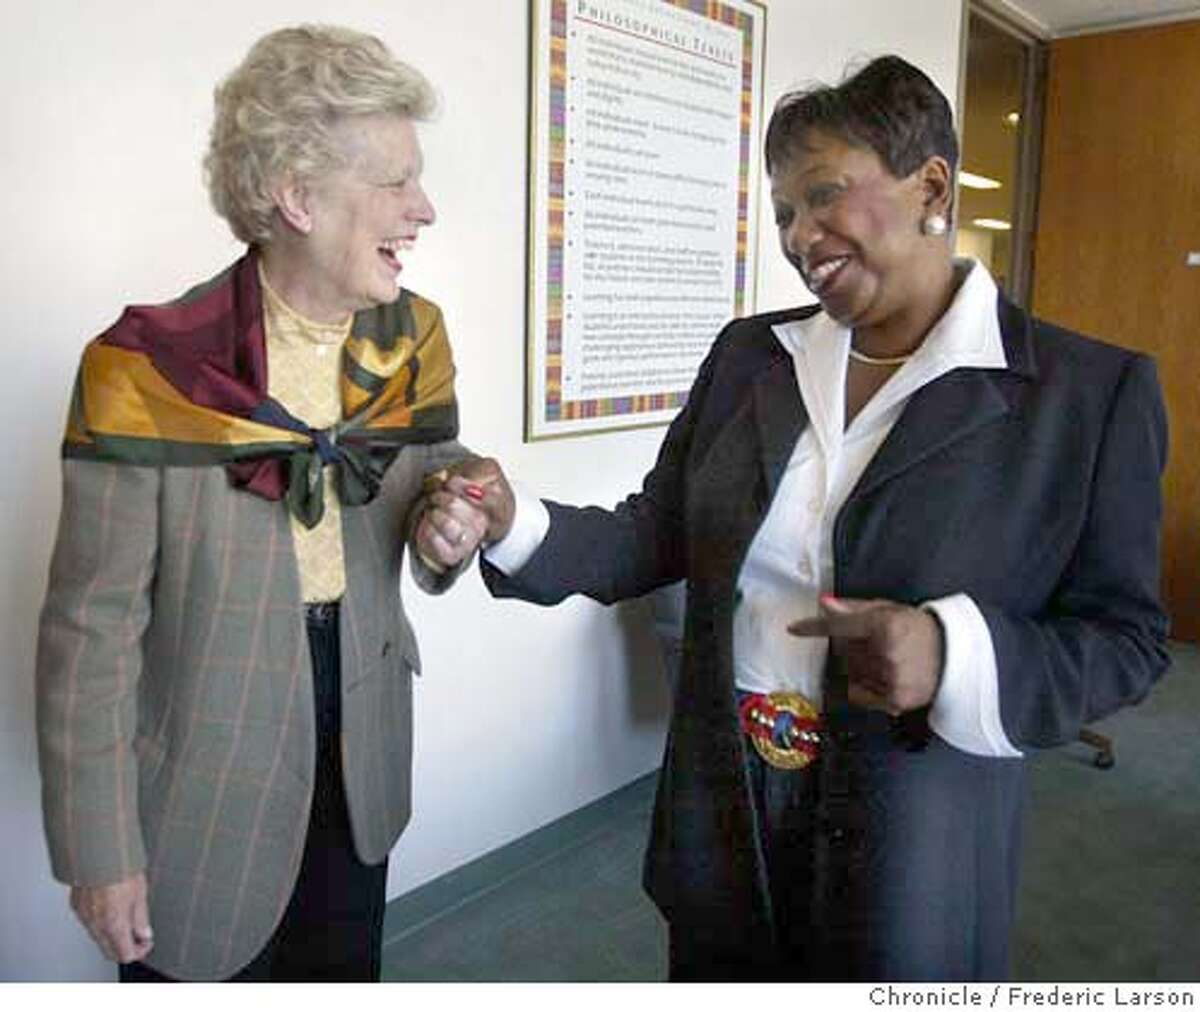 ; Superintendent Arlene Ackerman's (right) phone call to then-City Attorney Louise Renne (left) back in August, 2000 telling her something in the district's facilities department seemed fishy to the announcement Wednesday that she helped the district win $43.1 million from a big energy company that defrauded it. 7/2/04 San Francisco Chronicle Frederic Larson